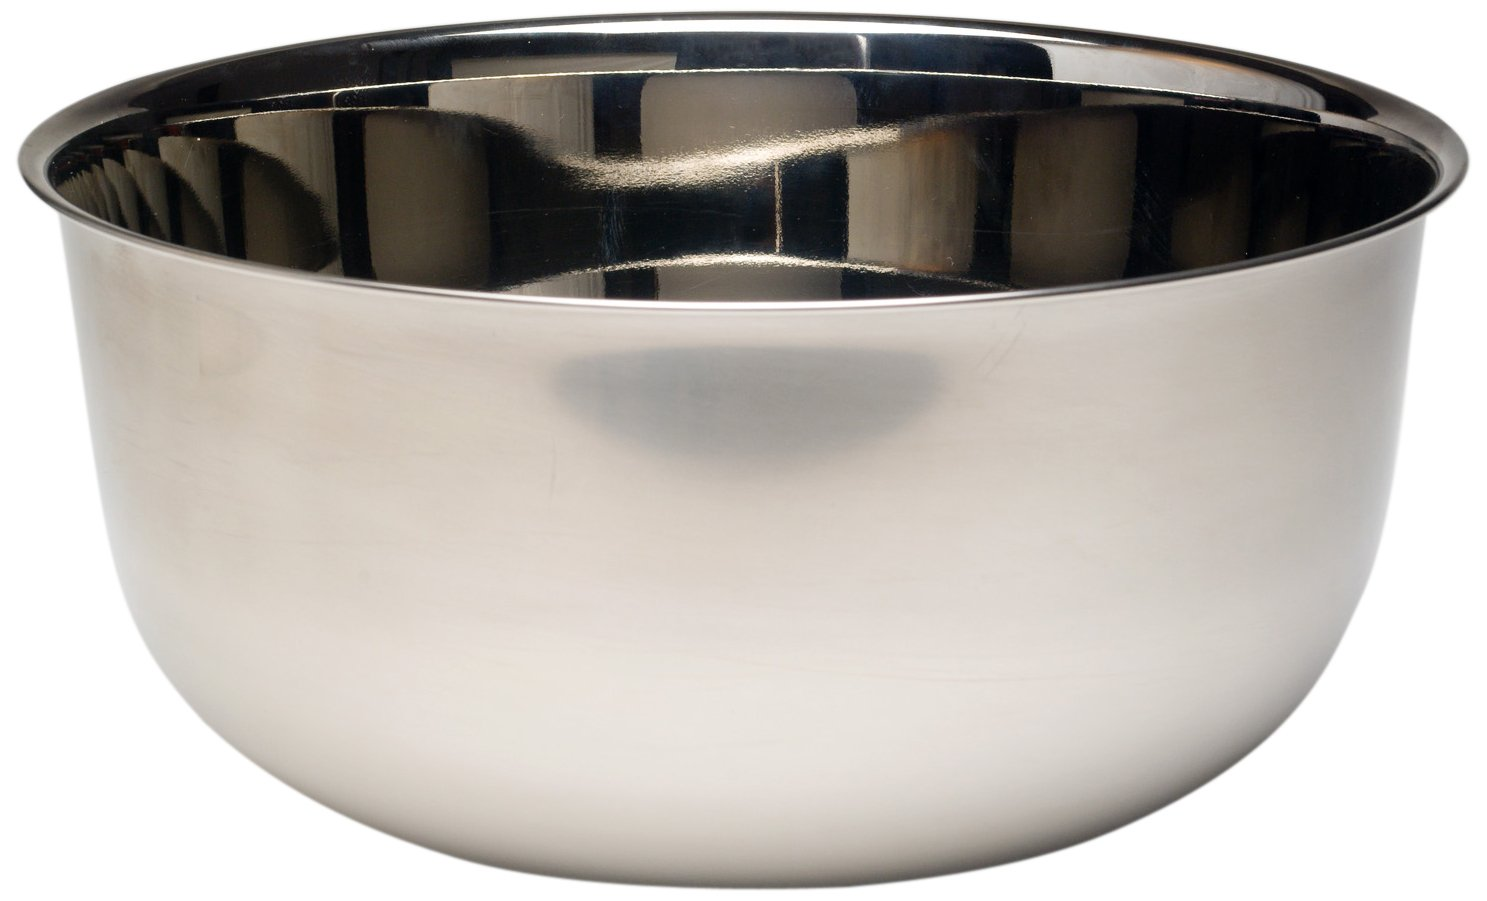 Replacement Bowl for Revolation Delta and X3210 Chocolate Tempering Machine ChocoVision C5019RX